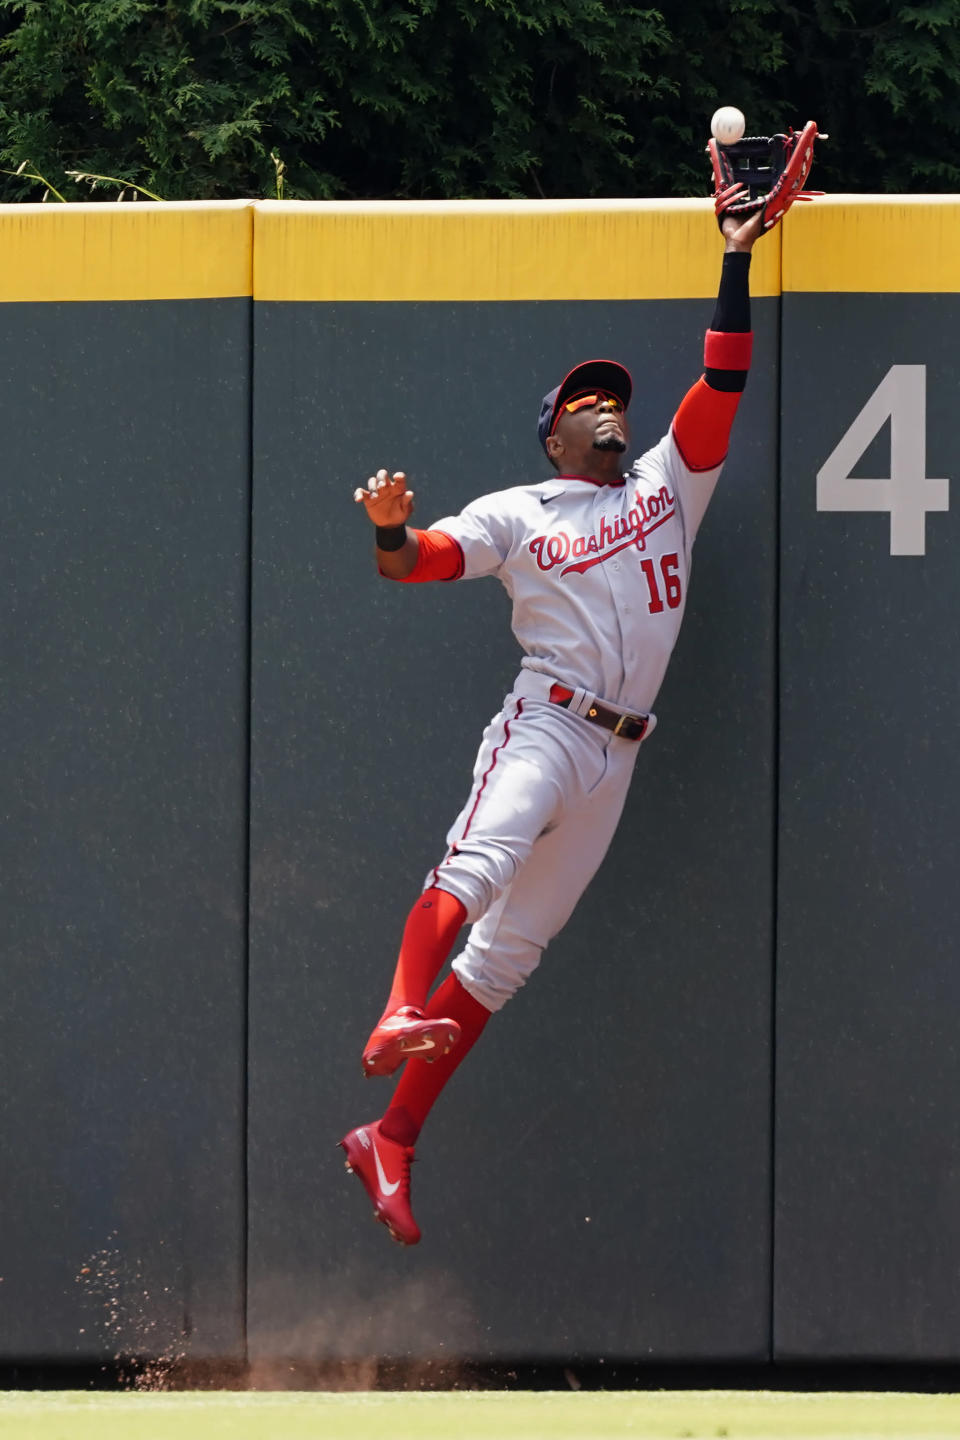 Washington Nationals center fielder Victor Robles (16) catches a ball off the bat of Atlanta Braves' Austin Riley in the second inning of a baseball game Thursday, June 3, 2021, in Atlanta. (AP Photo/John Bazemore)